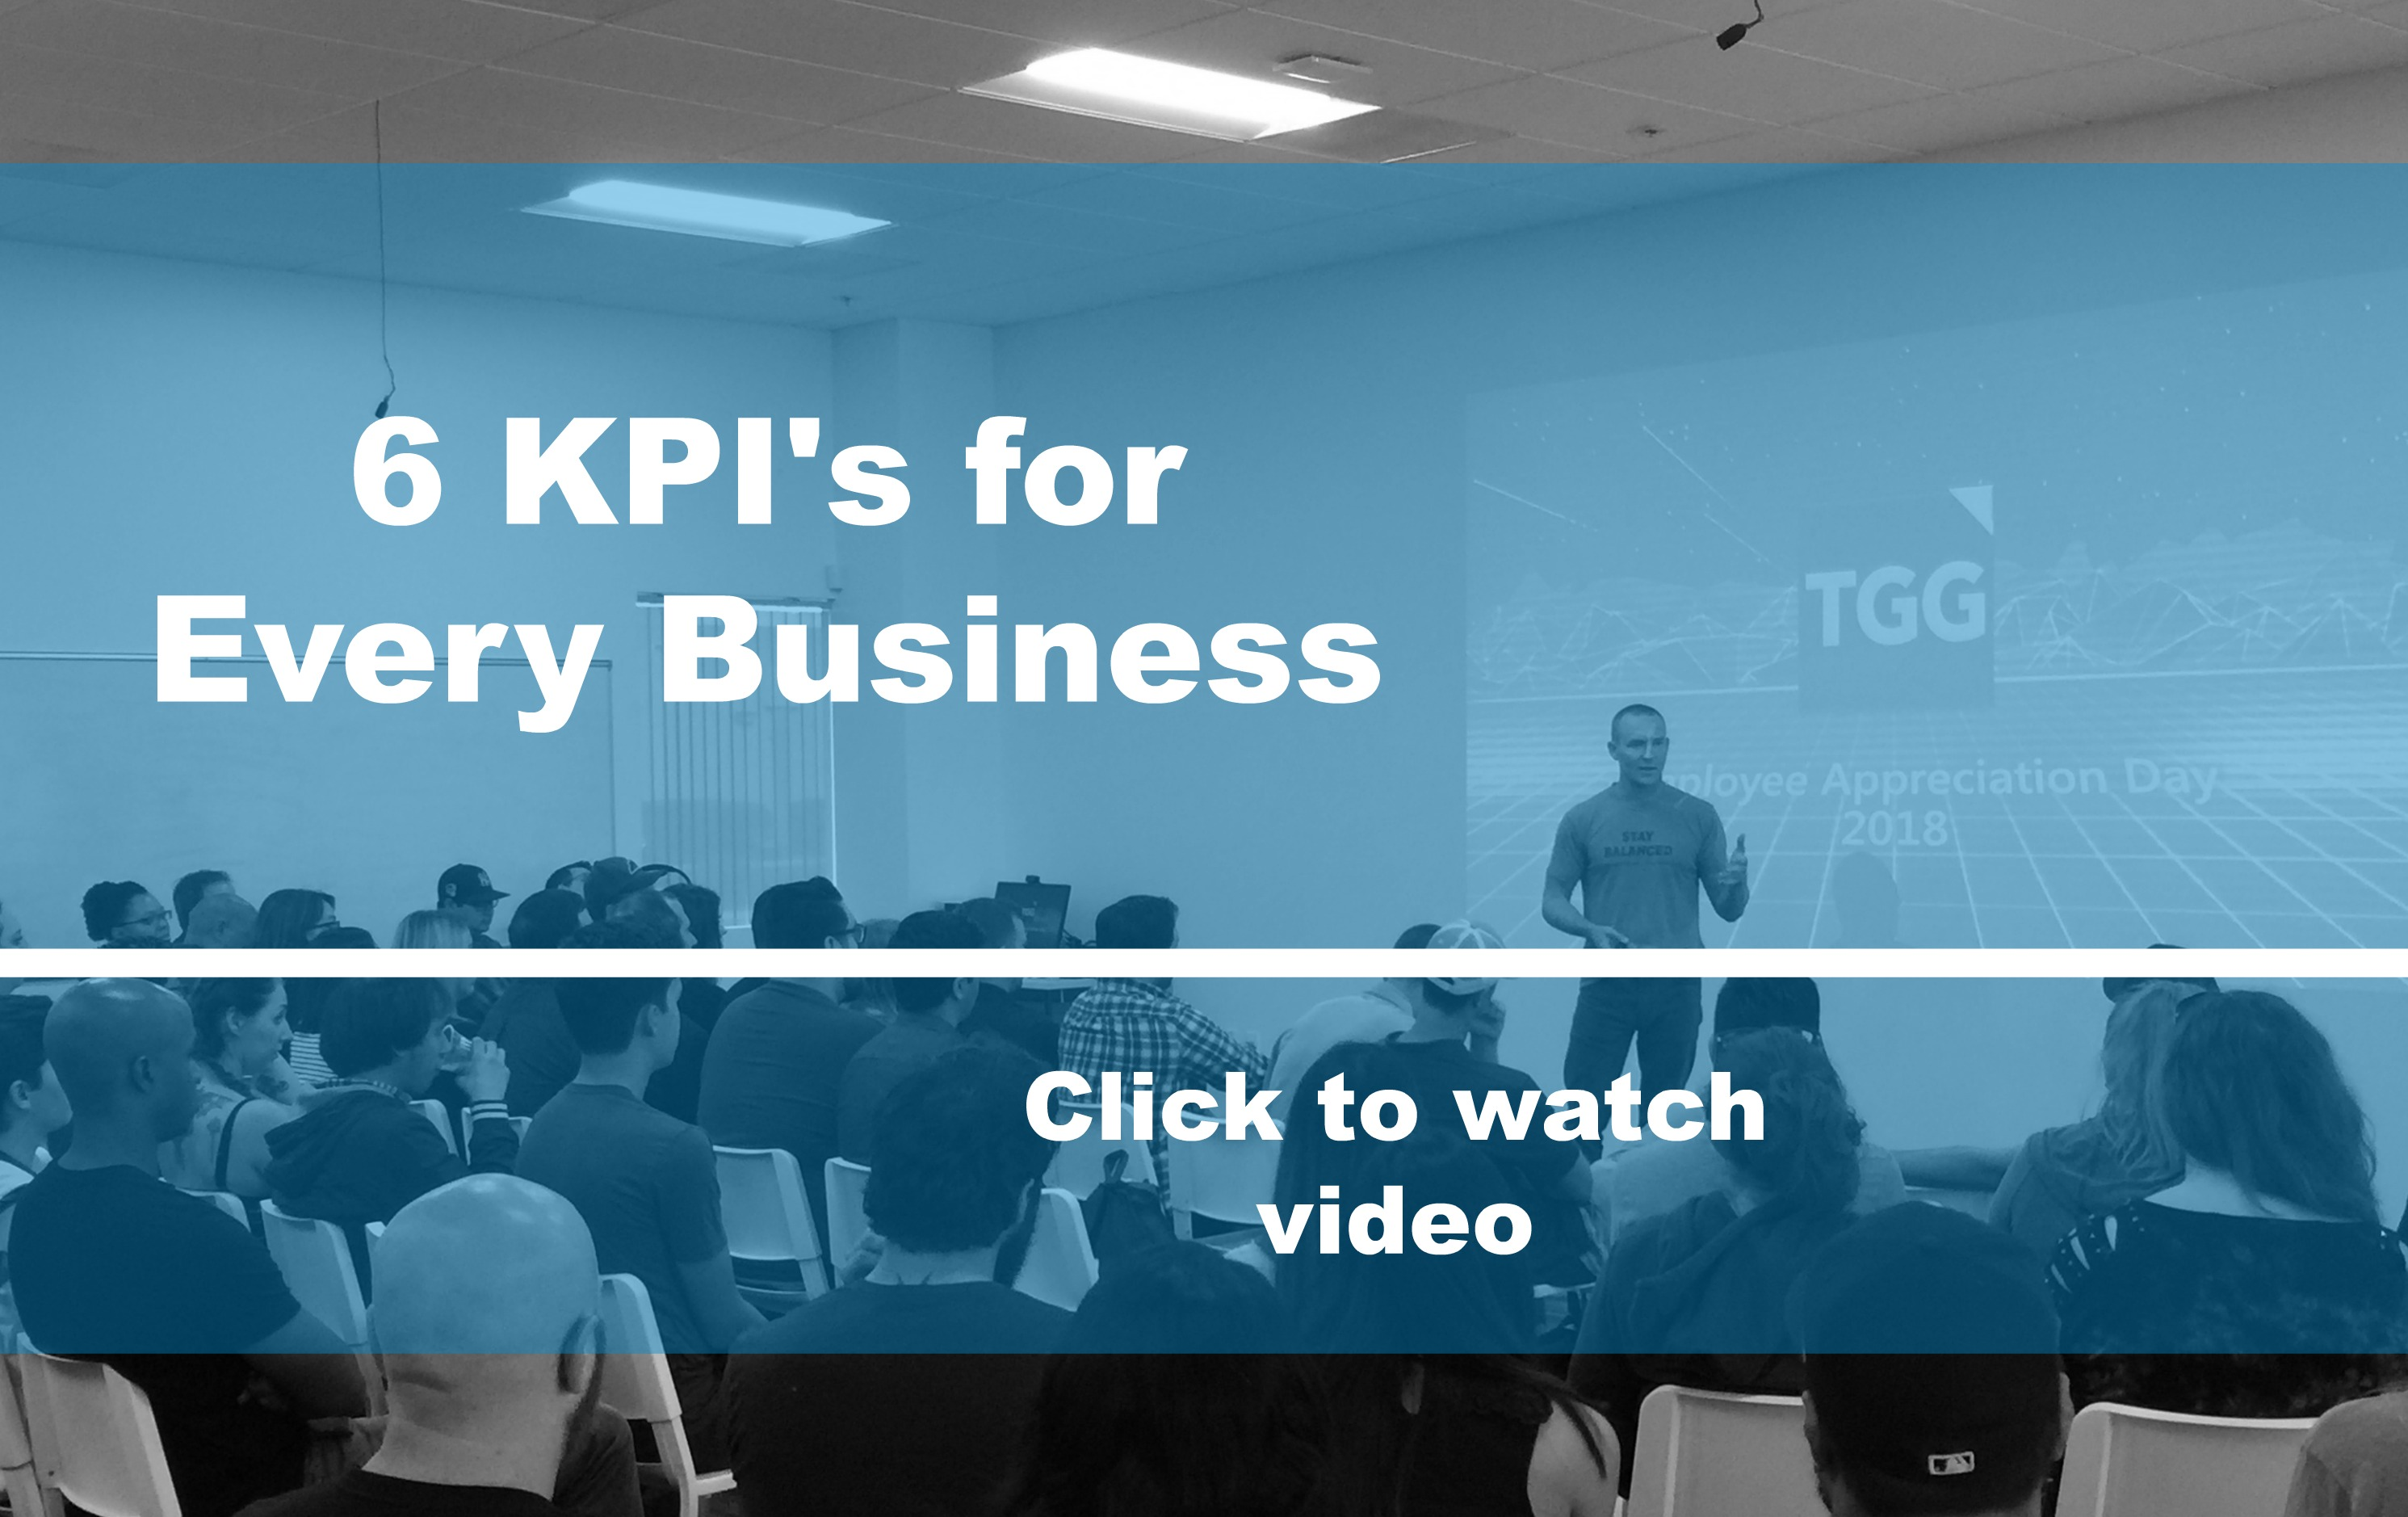 6 KPI's for Every Business!